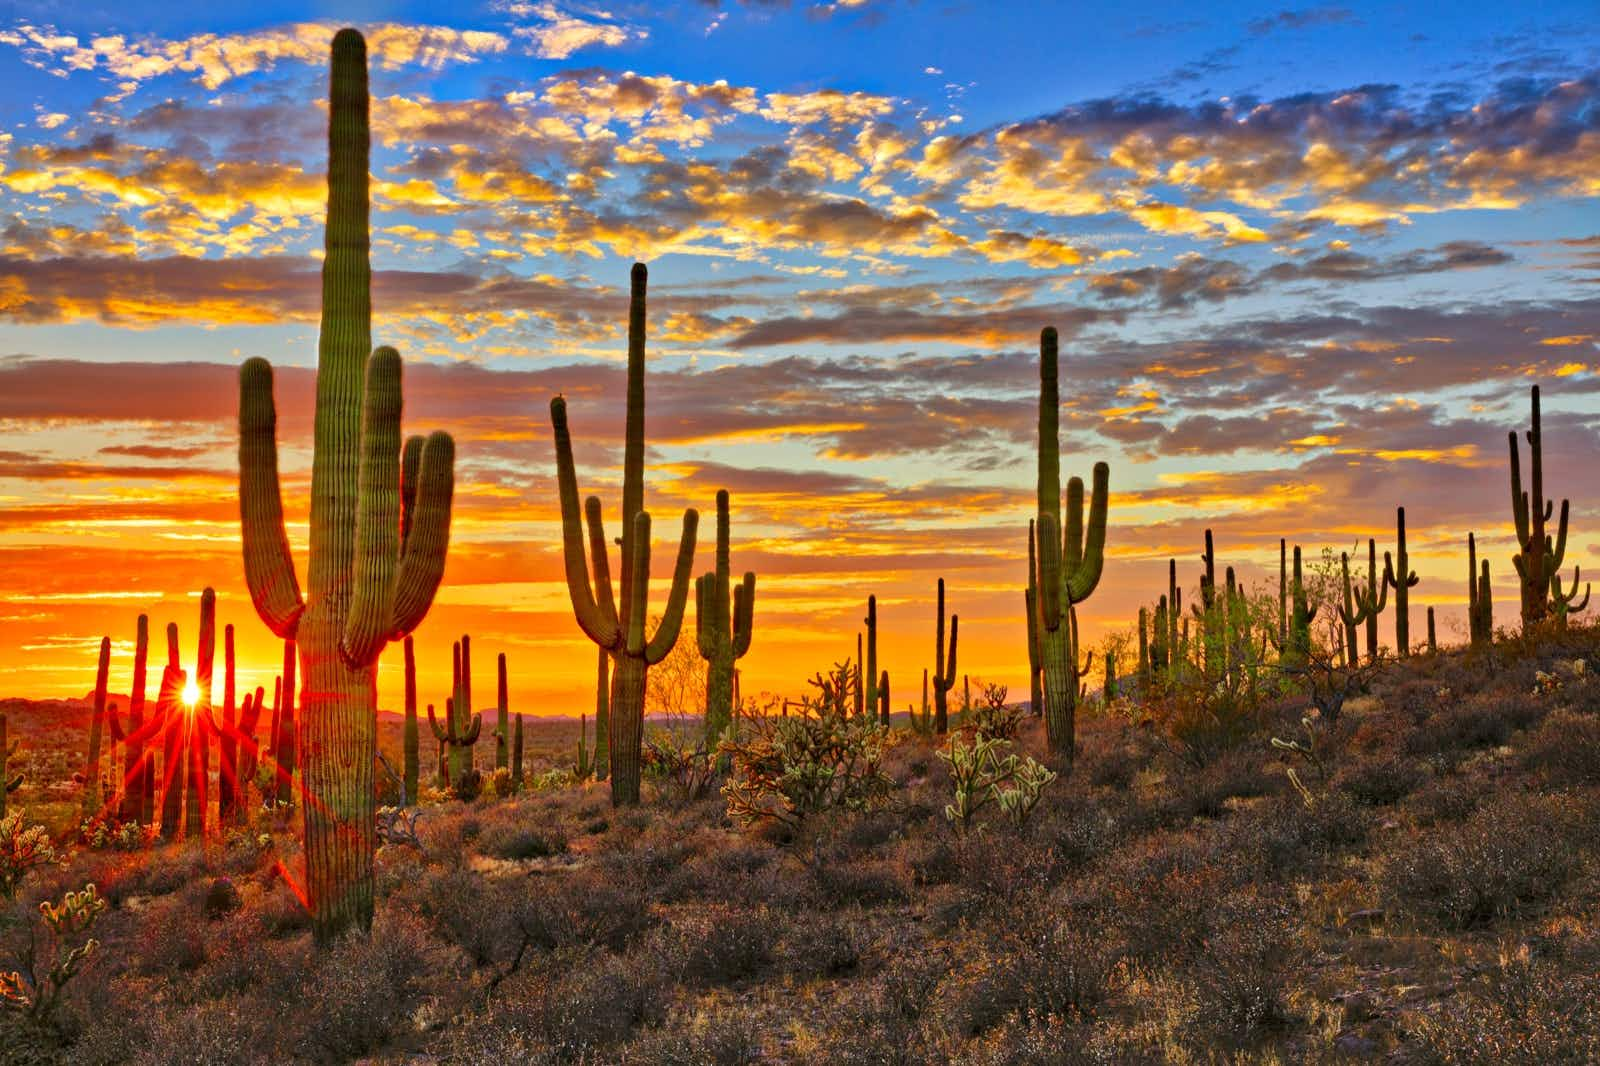 A radiant orange and blue sunset paints the sky behind a row of tall, armed cactuses